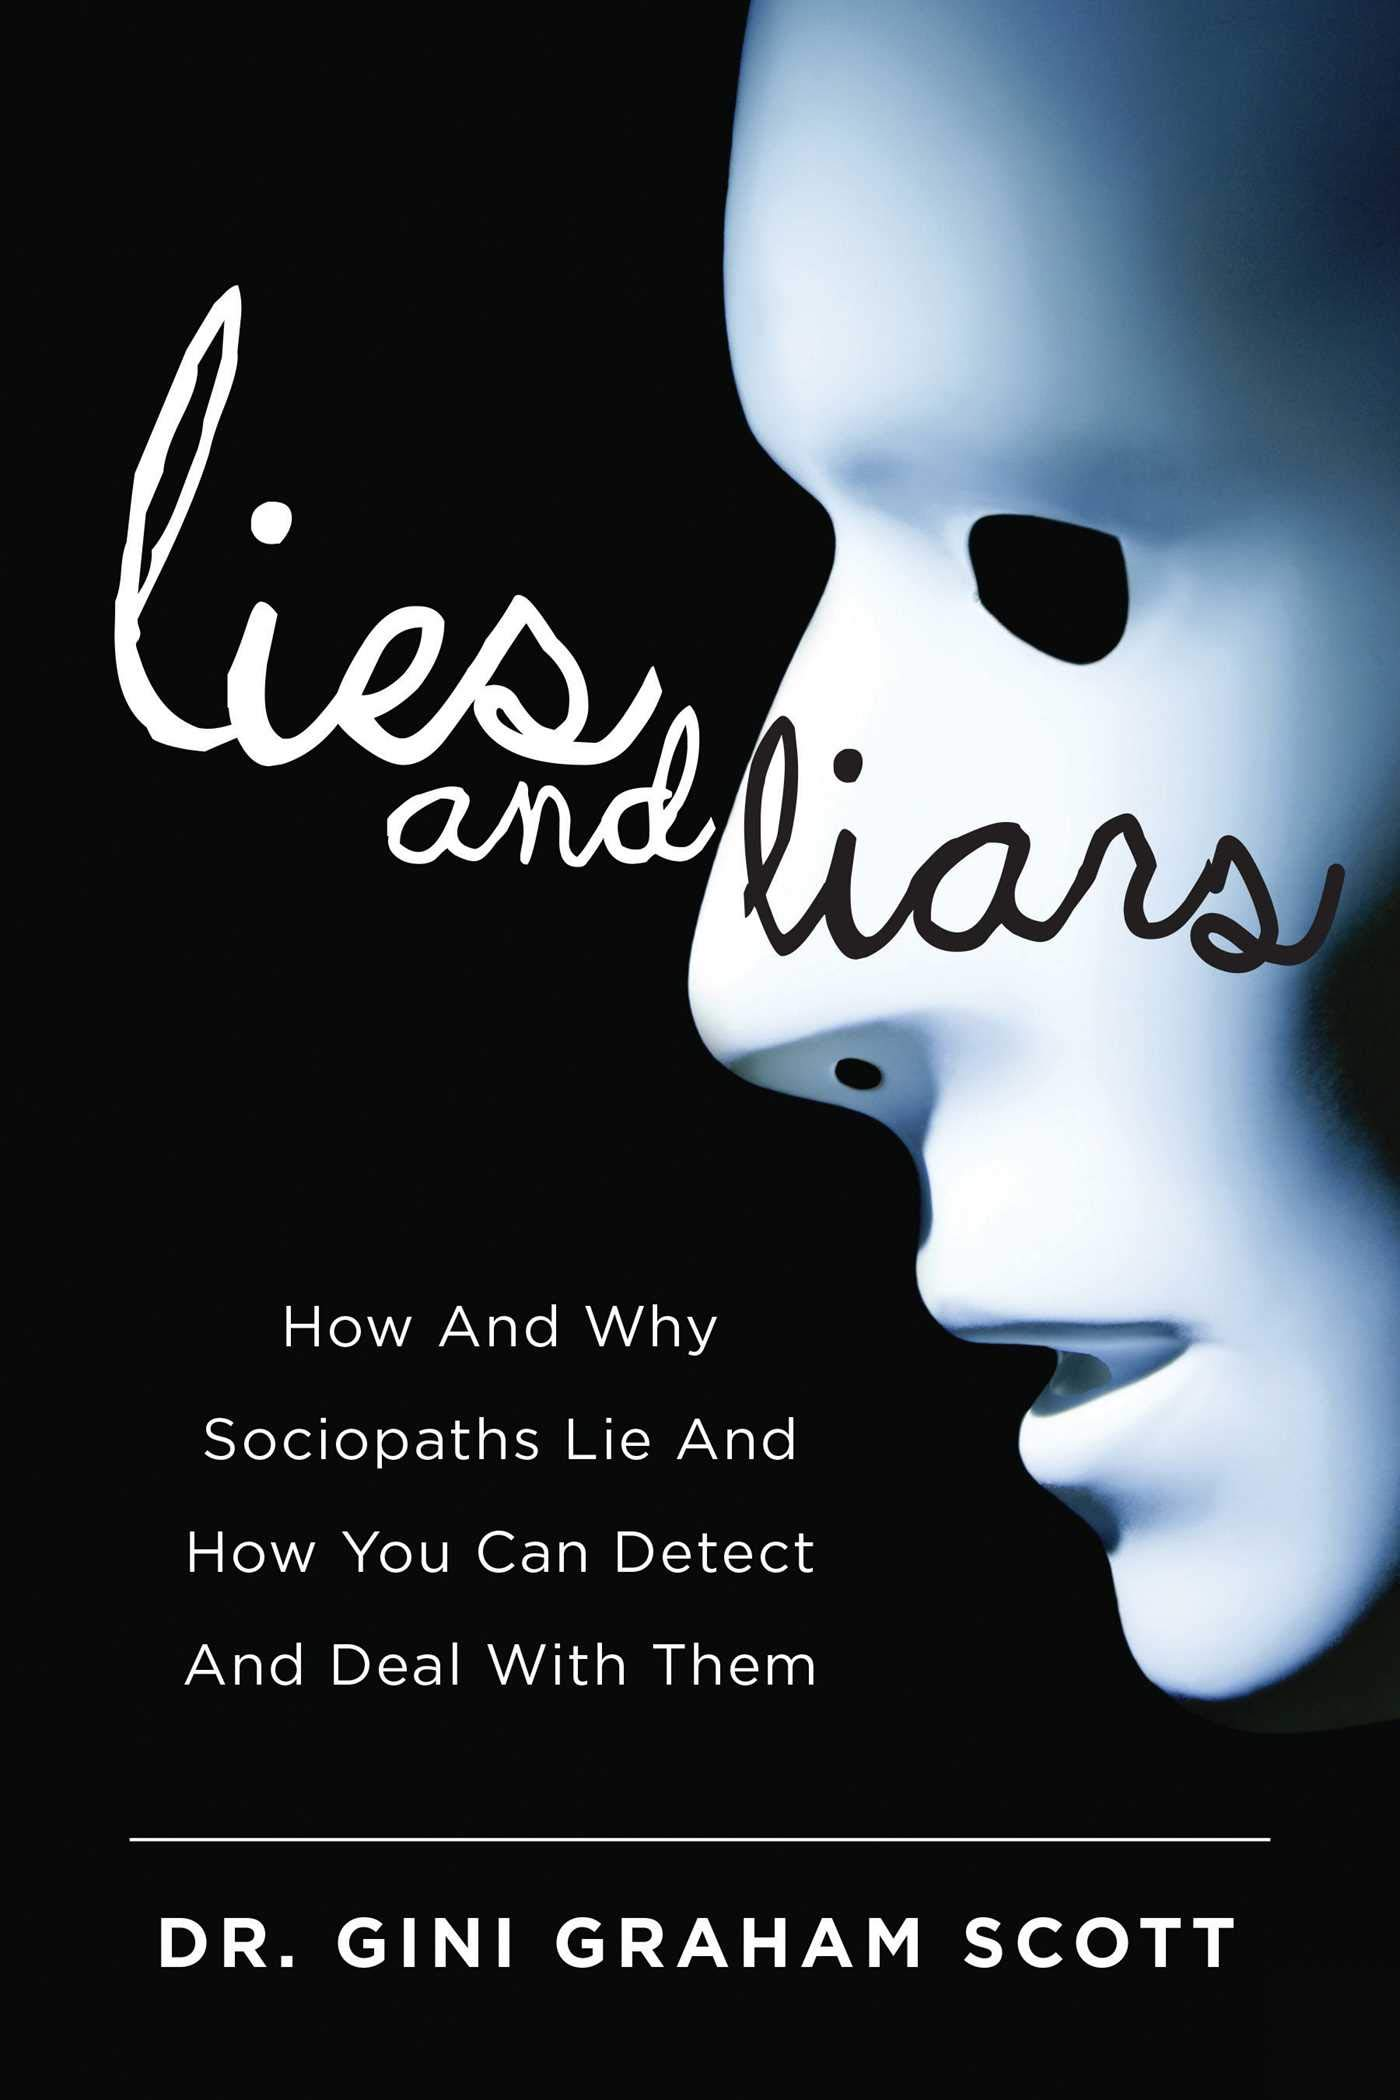 Liars lie why From 2016: